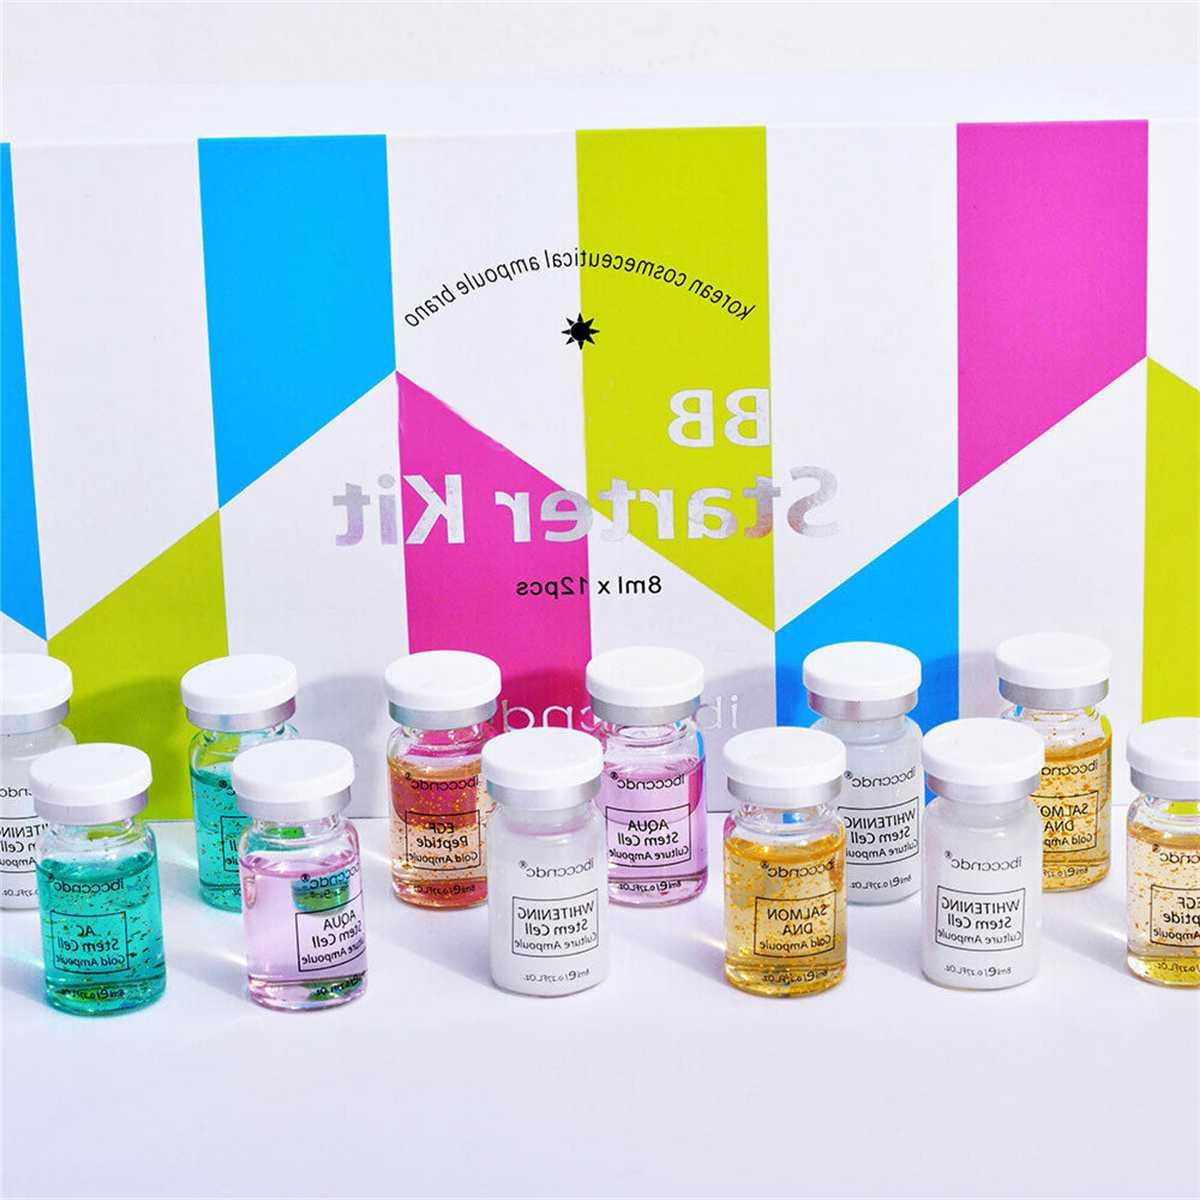 Ampoule Booster Whitening Acne White Booster Ampoule Serum Starter Kit <font><b>BB</b></font> Kit